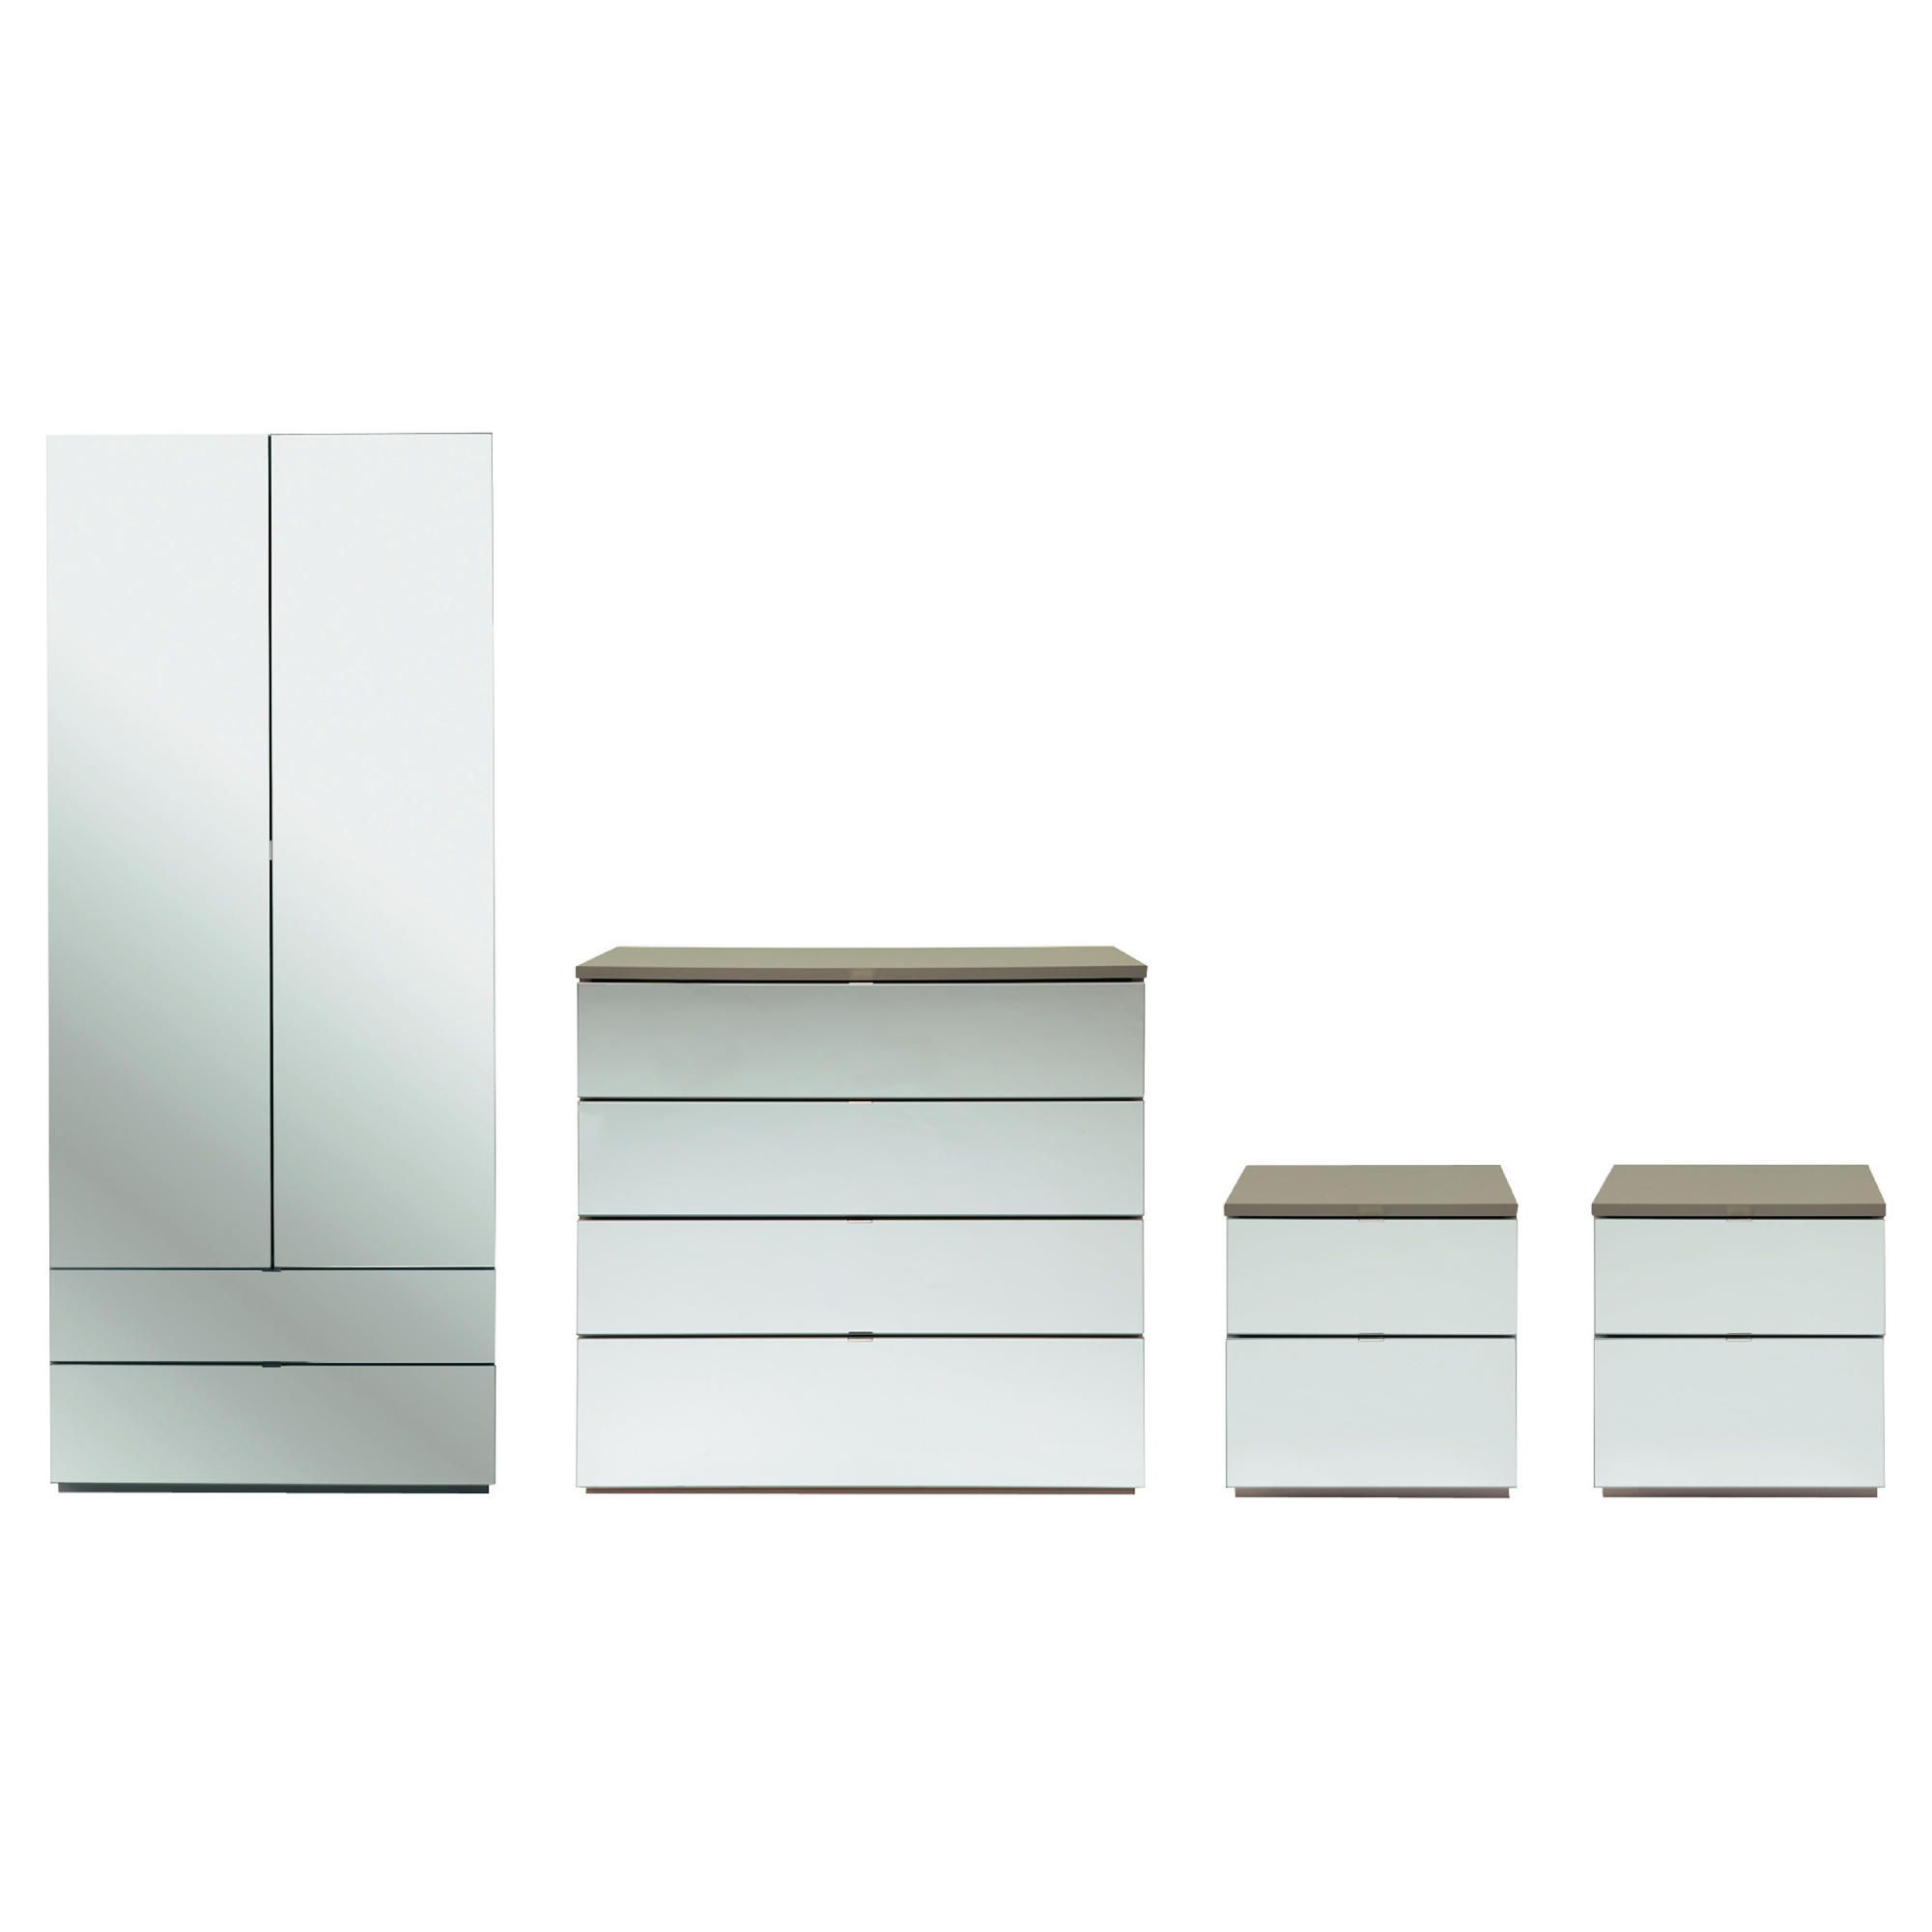 Palermo Package 3 Taupe (Wardrobe, 2 x Bedside, 4 Drawer Chest)-Mirrored at Tesco Direct